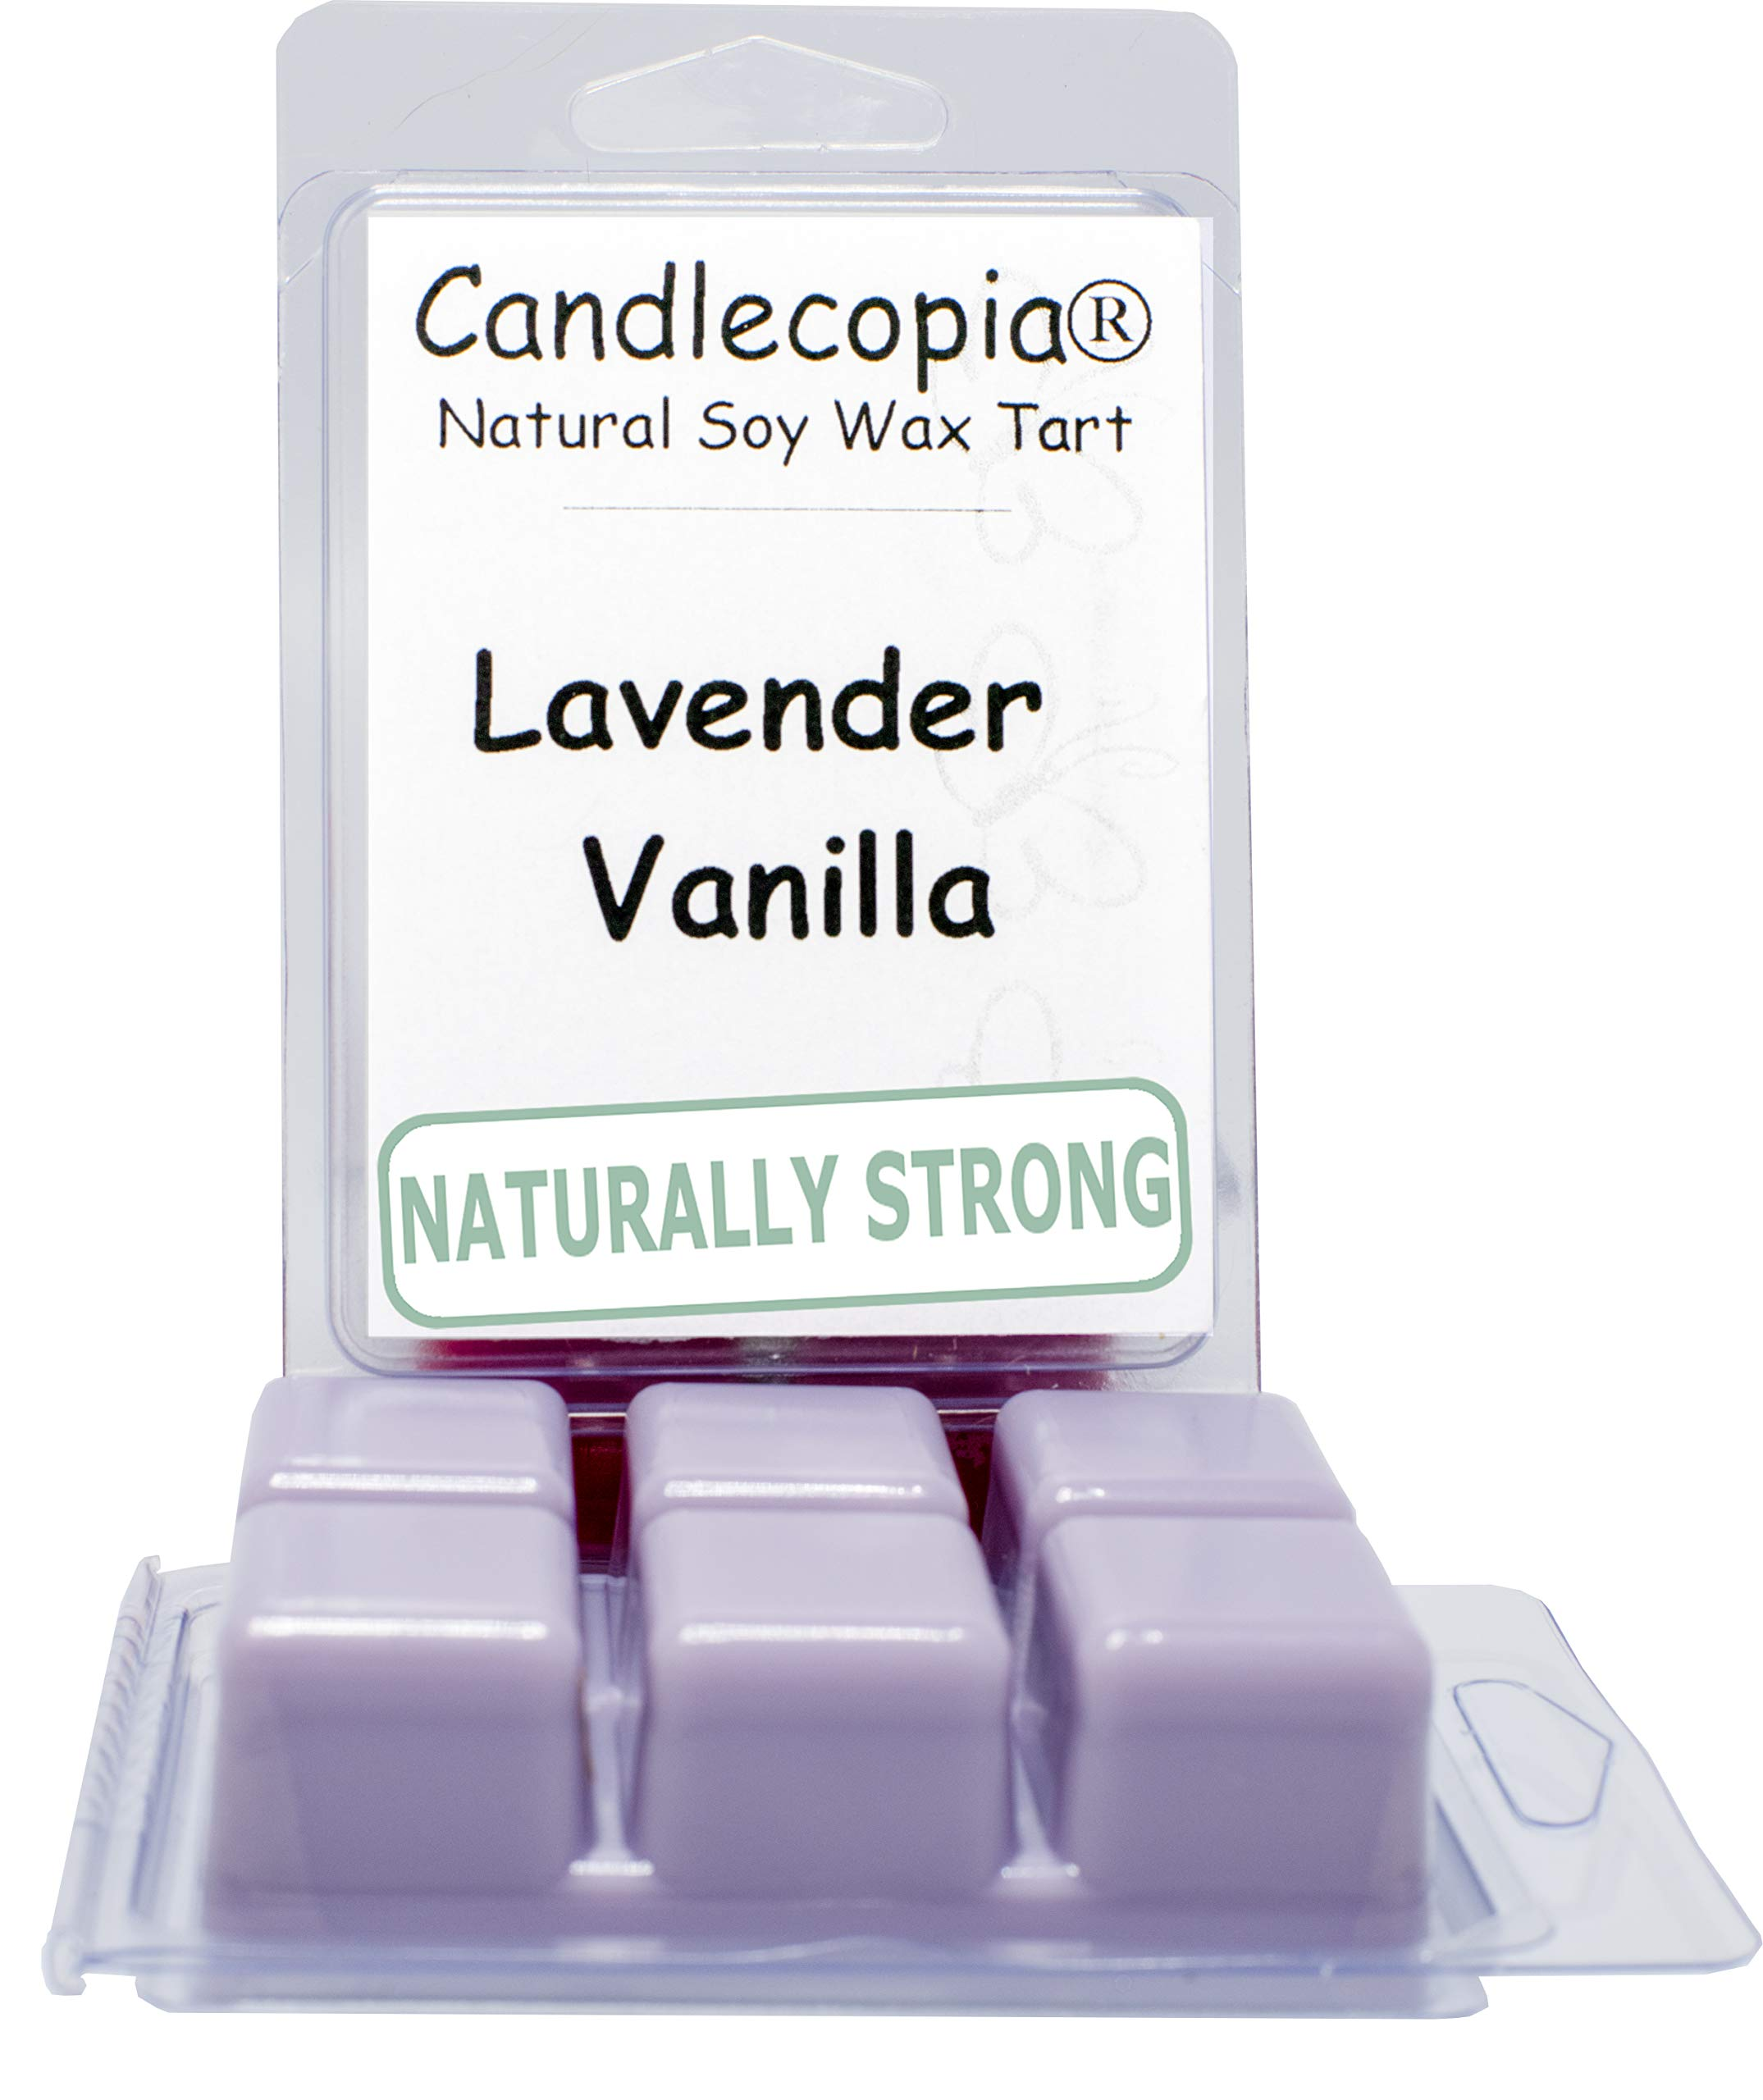 Candlecopia Lavender Vanilla Strongly Scented Hand Poured Vegan Wax Melts, 12 Scented Wax Cubes, 6.4 Ounces in 2 x 6-Packs